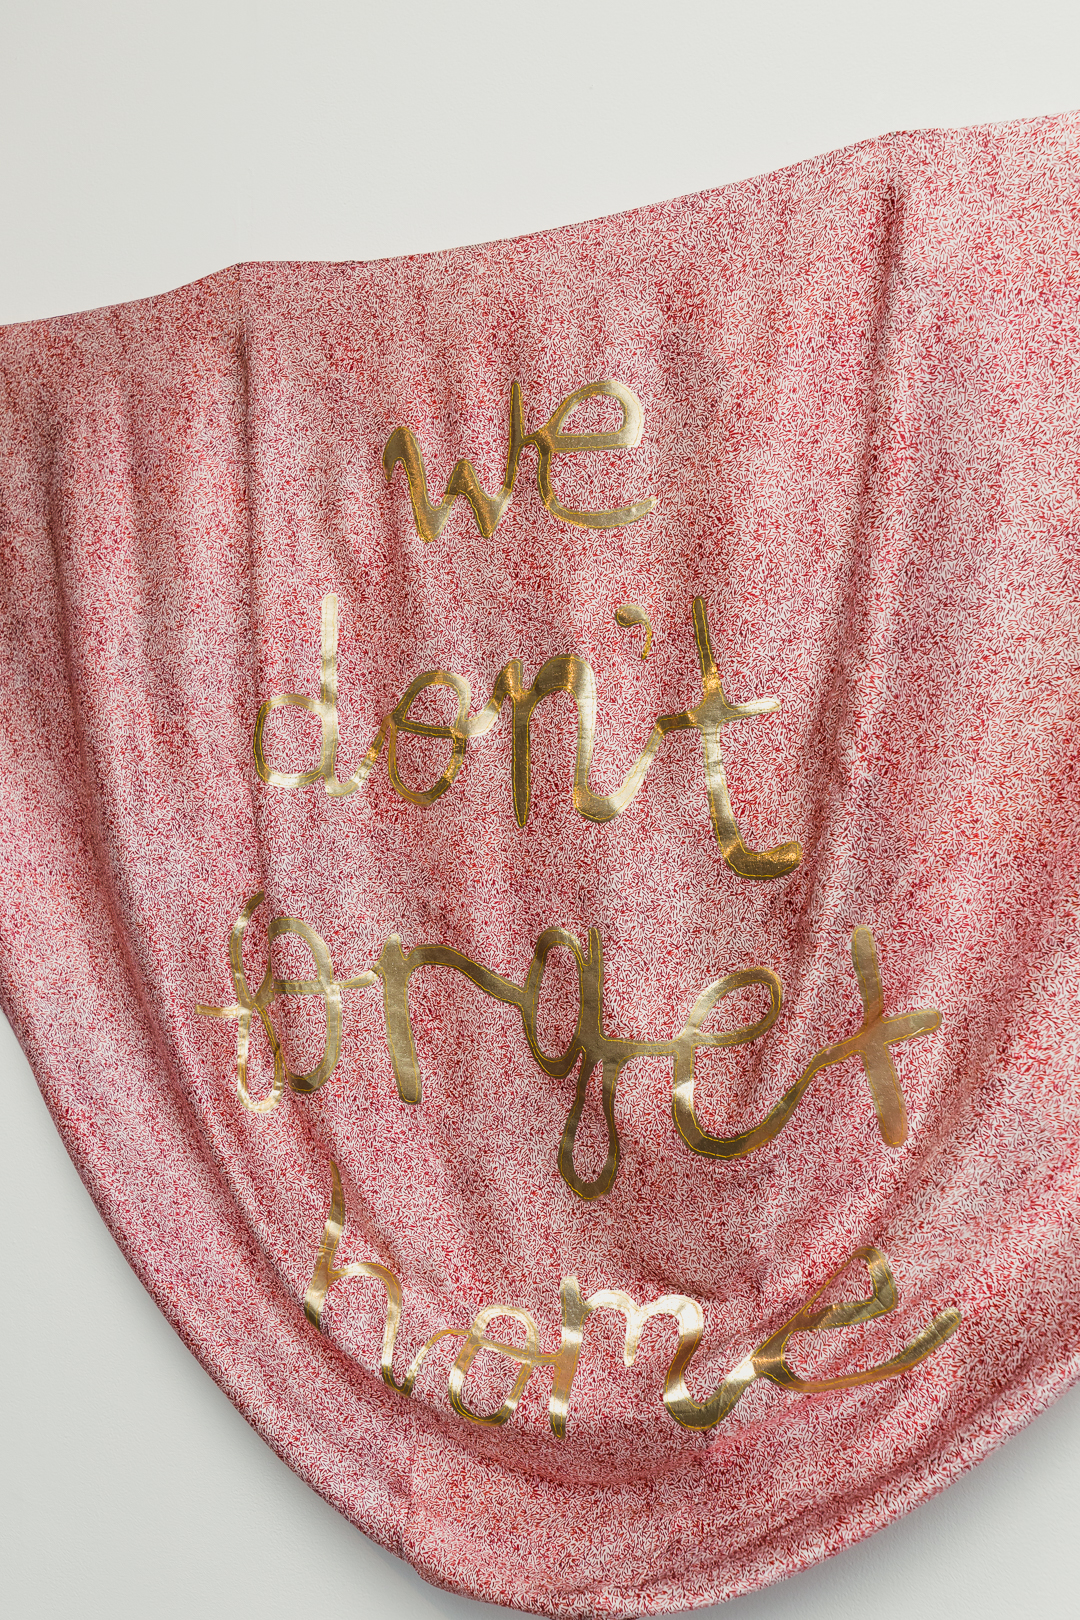 Nicole Barakat, We don't forget home, 2018, silk embroidered, hand cut lame on direct digital print silk satin (detail). Image by Document Photography.